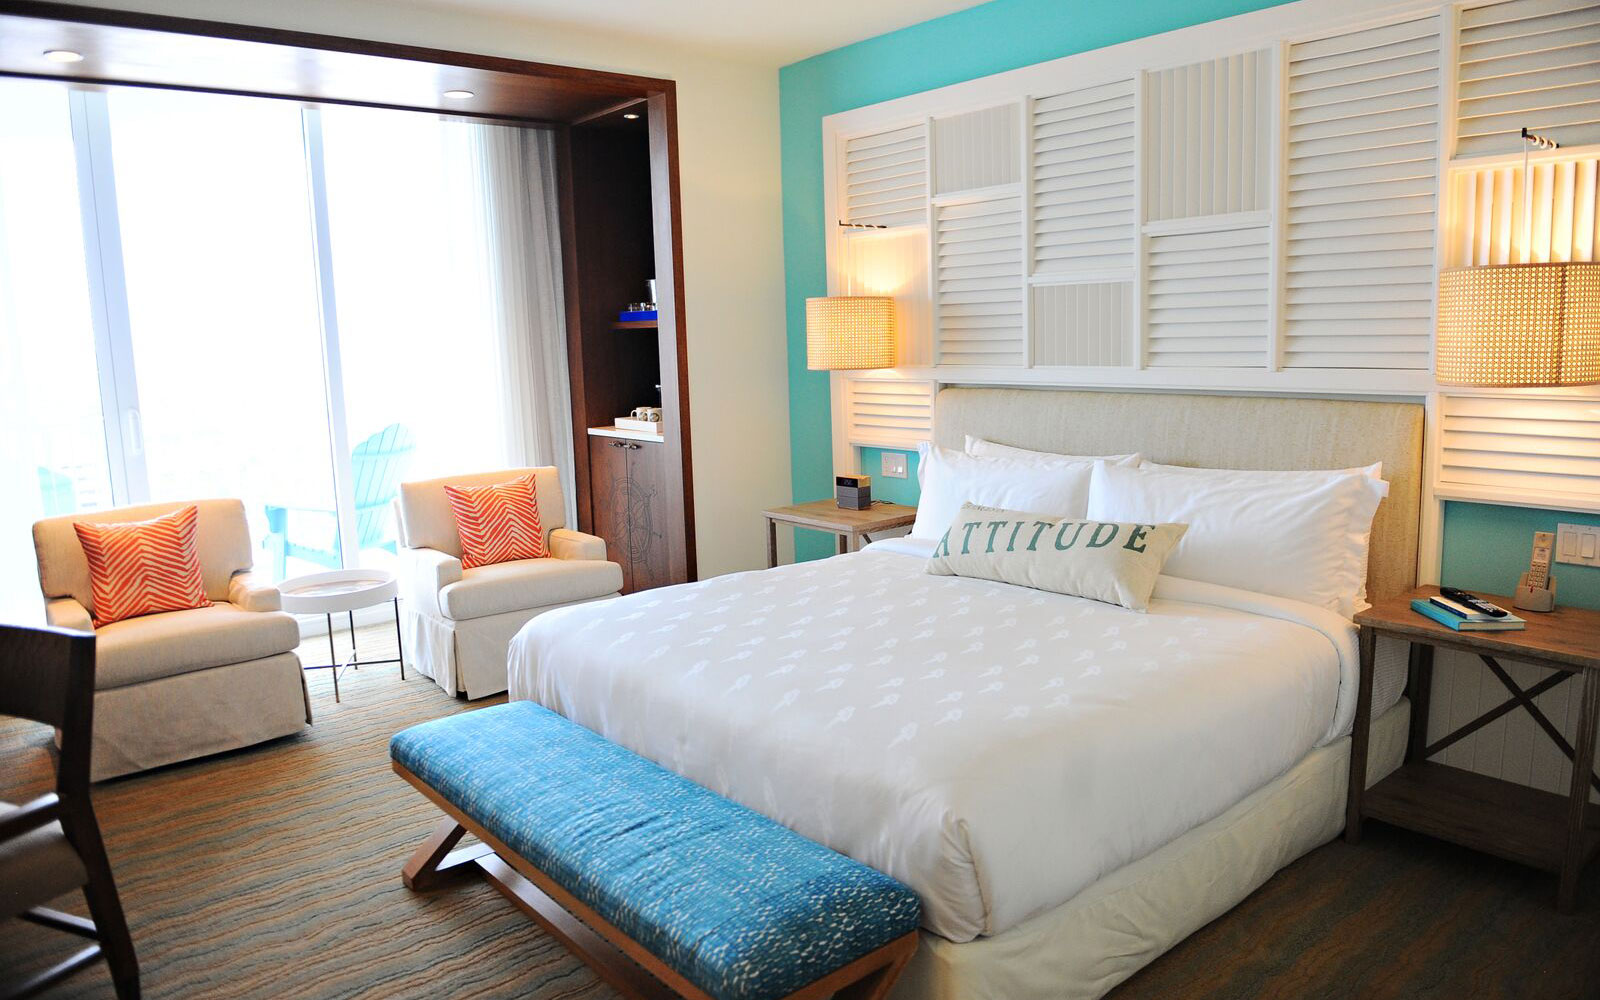 First Look: Margaritaville Hotel in Hollywood, Florida